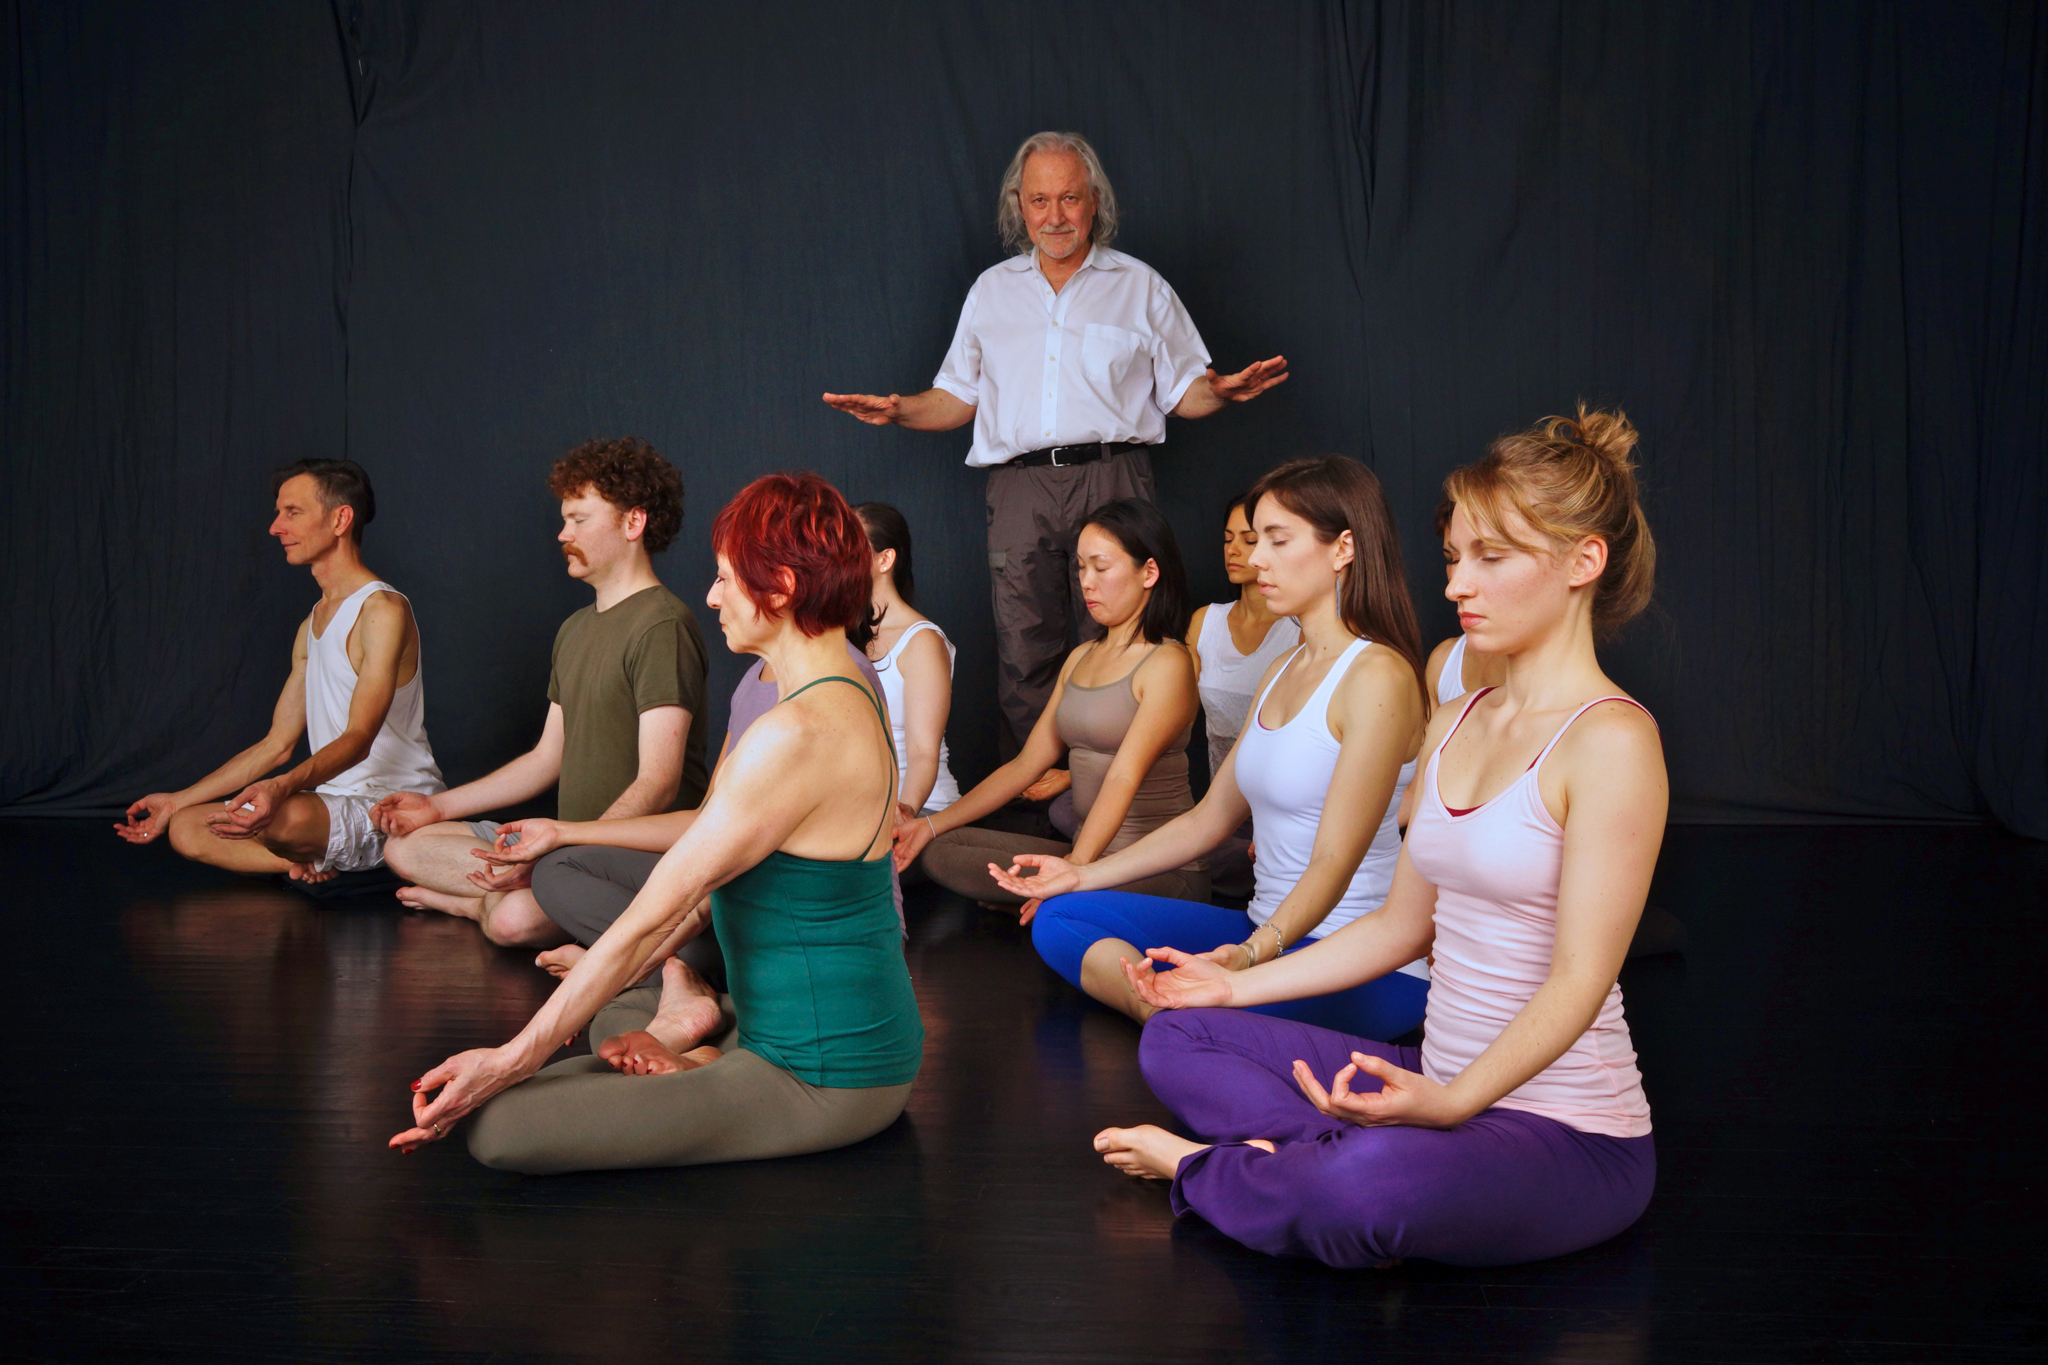 Meditate at Ishta Yoga